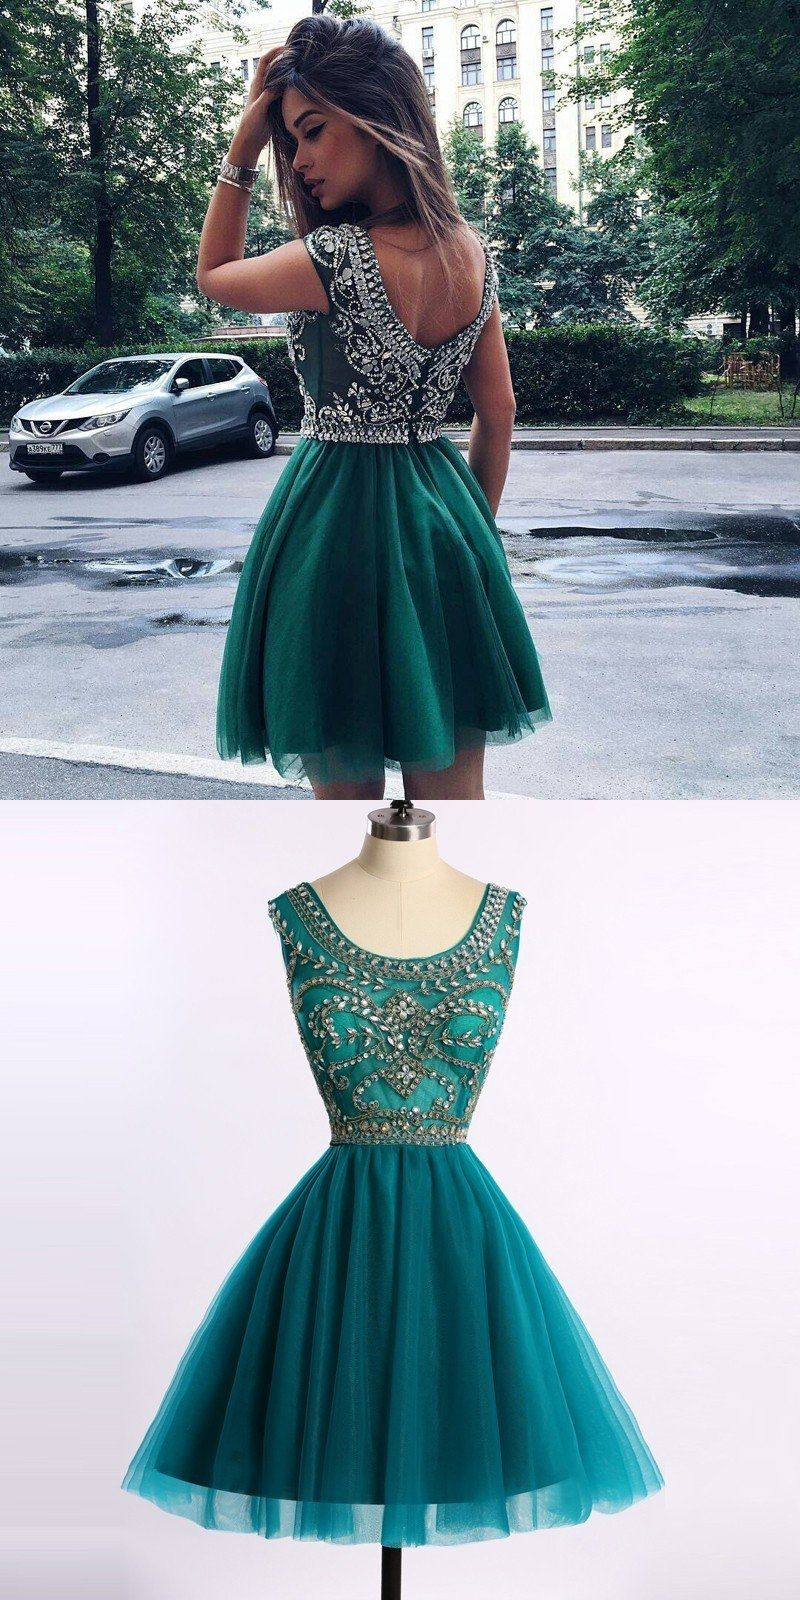 Long prom dresses chic turquoise hunter homecoming prom dress